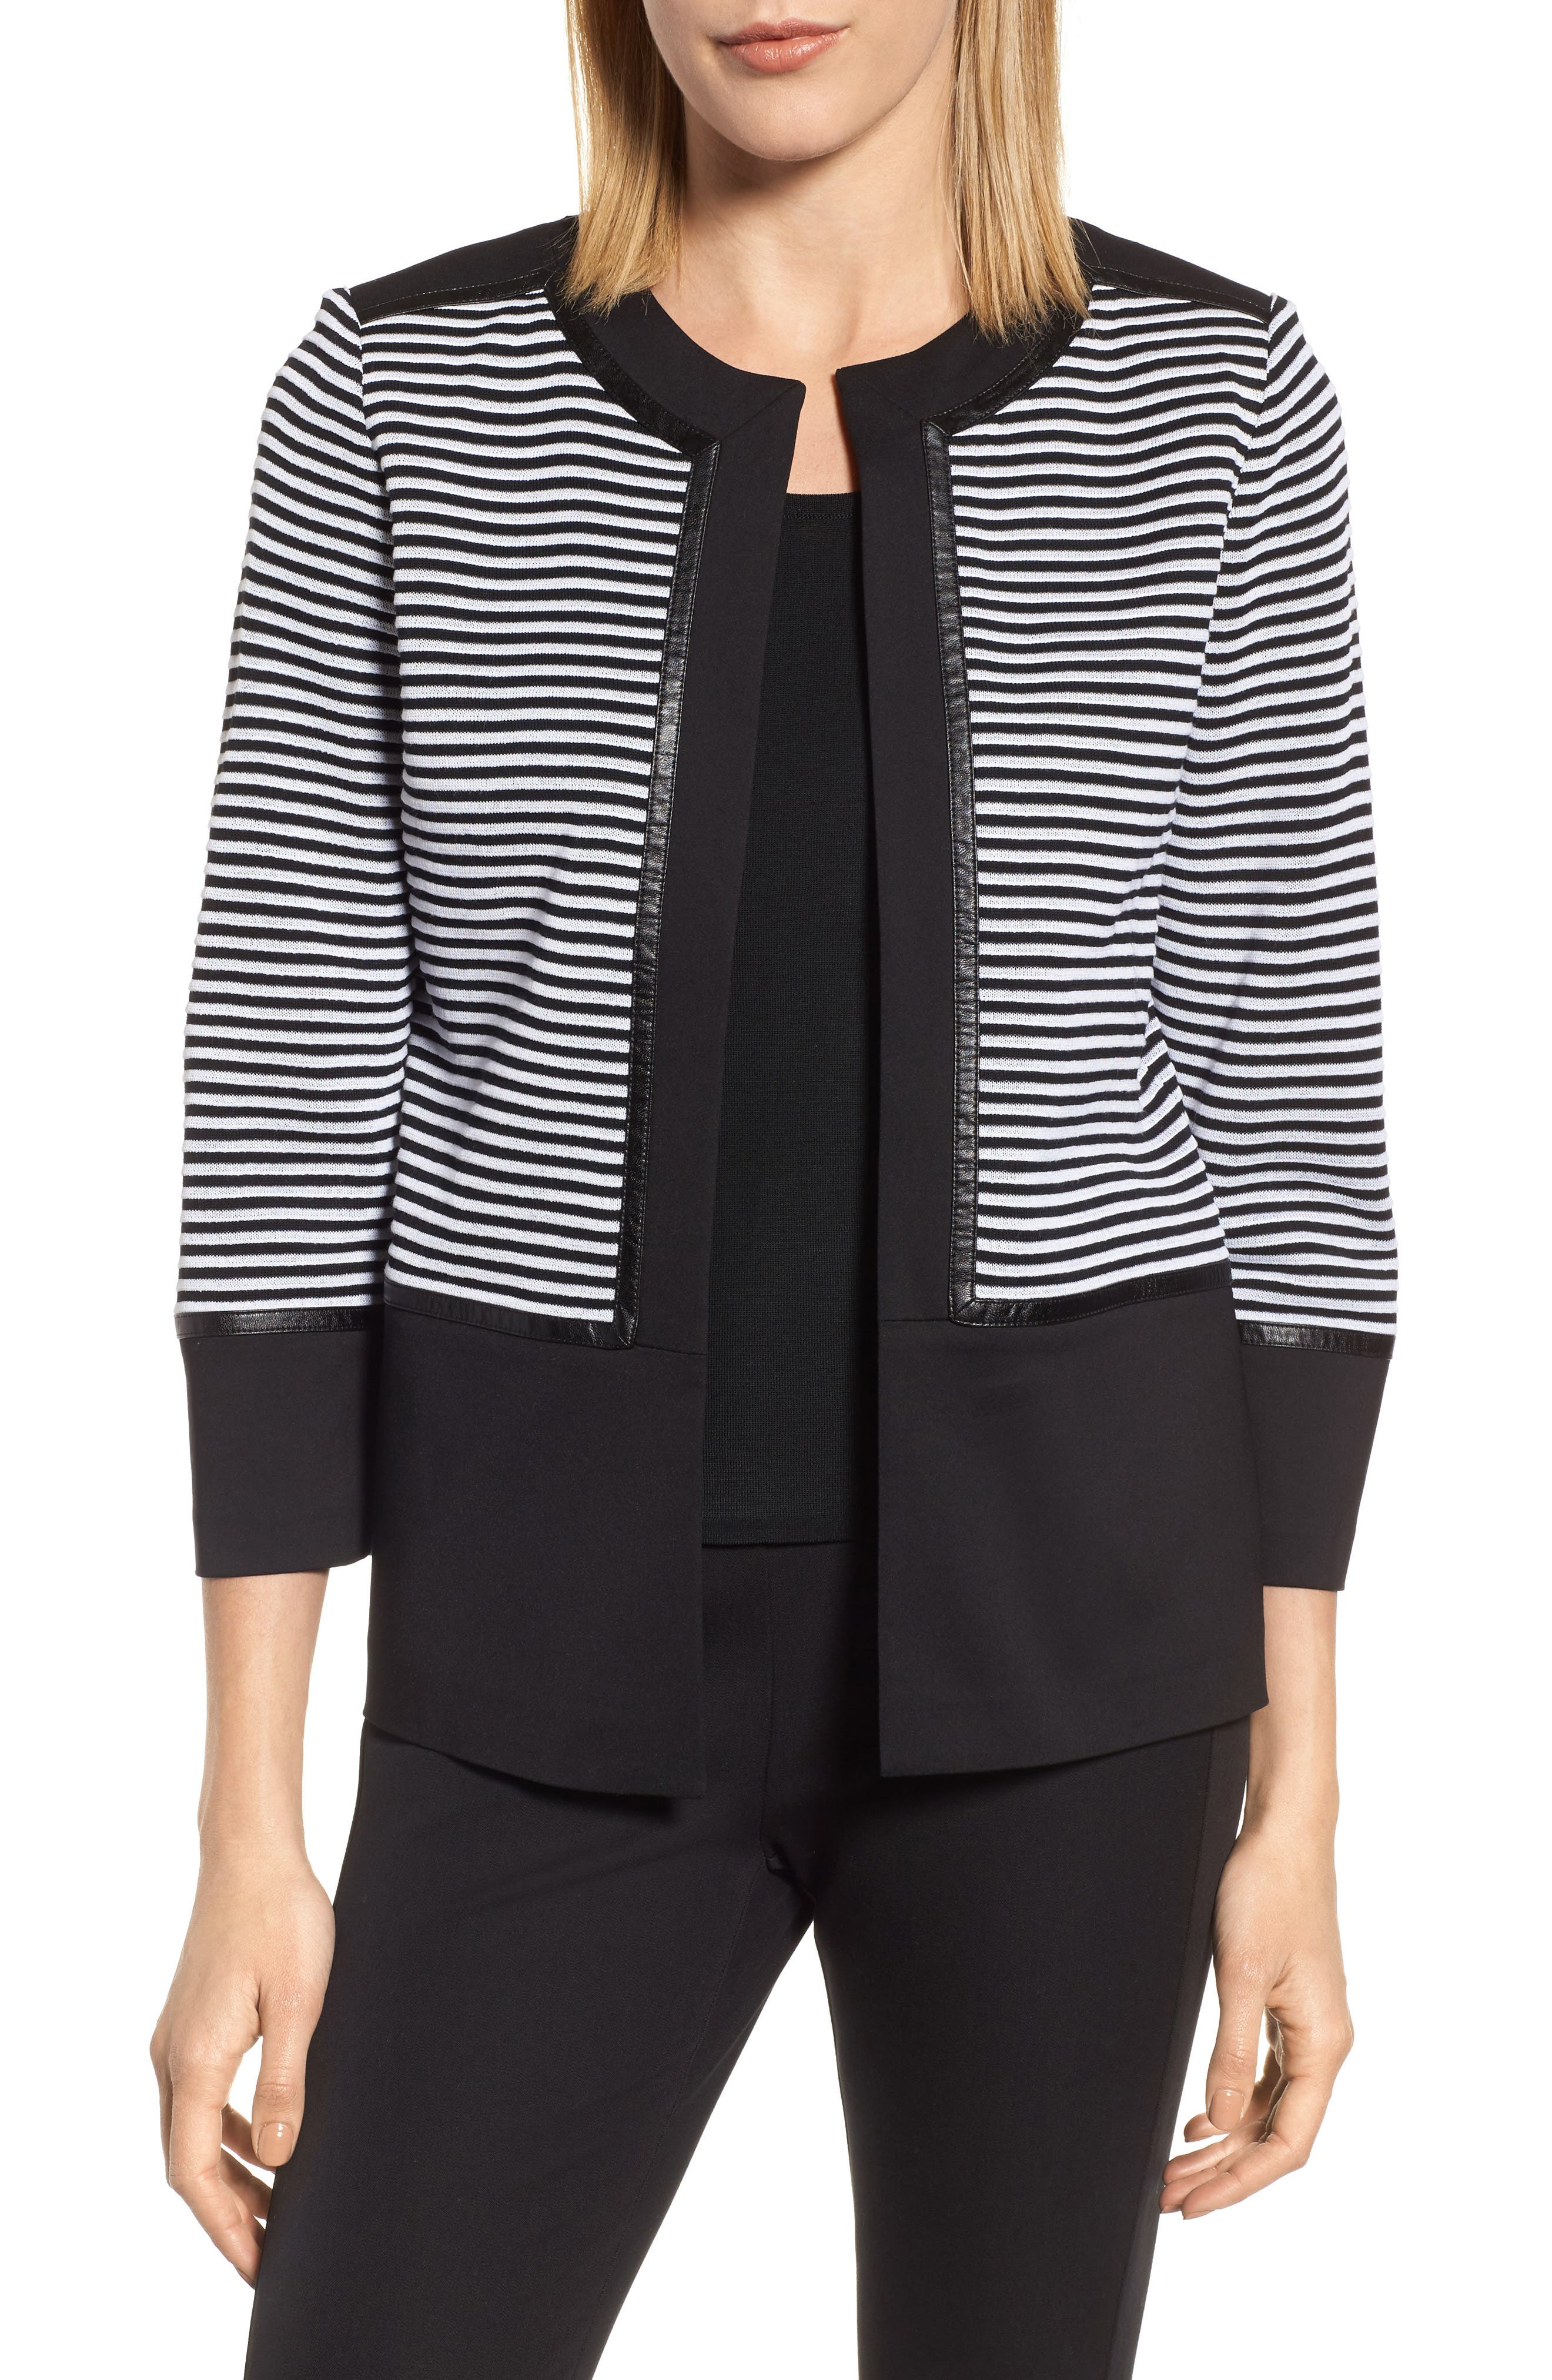 Alternate Image 1 Selected - Ming Wang Faux Leather Trim Stripe Knit Jacket